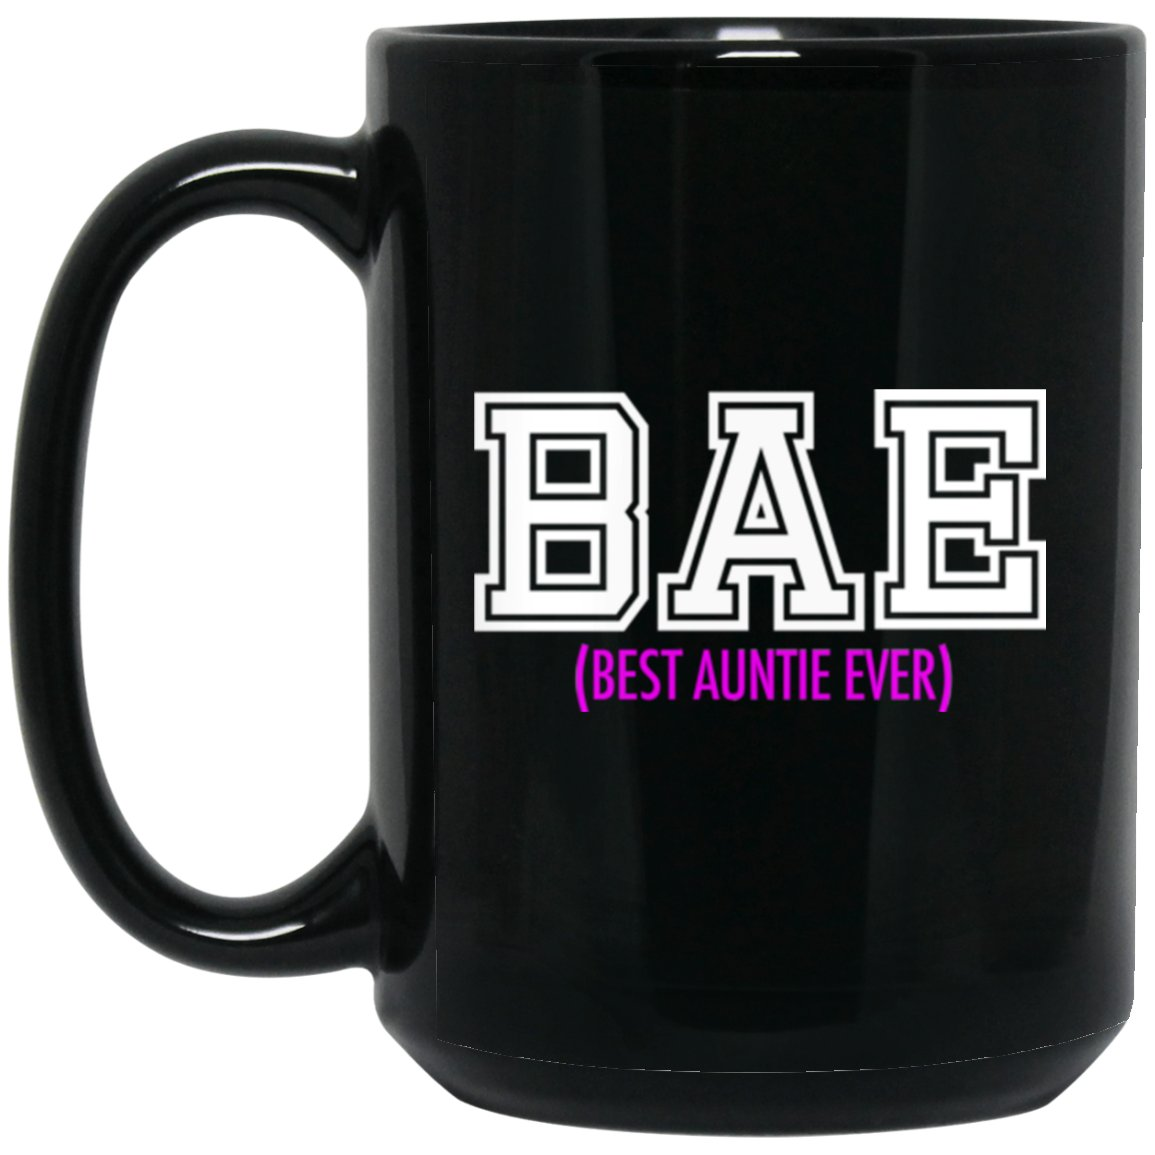 Nice Gift For An Aunt Coffee Mug Large Black Mug